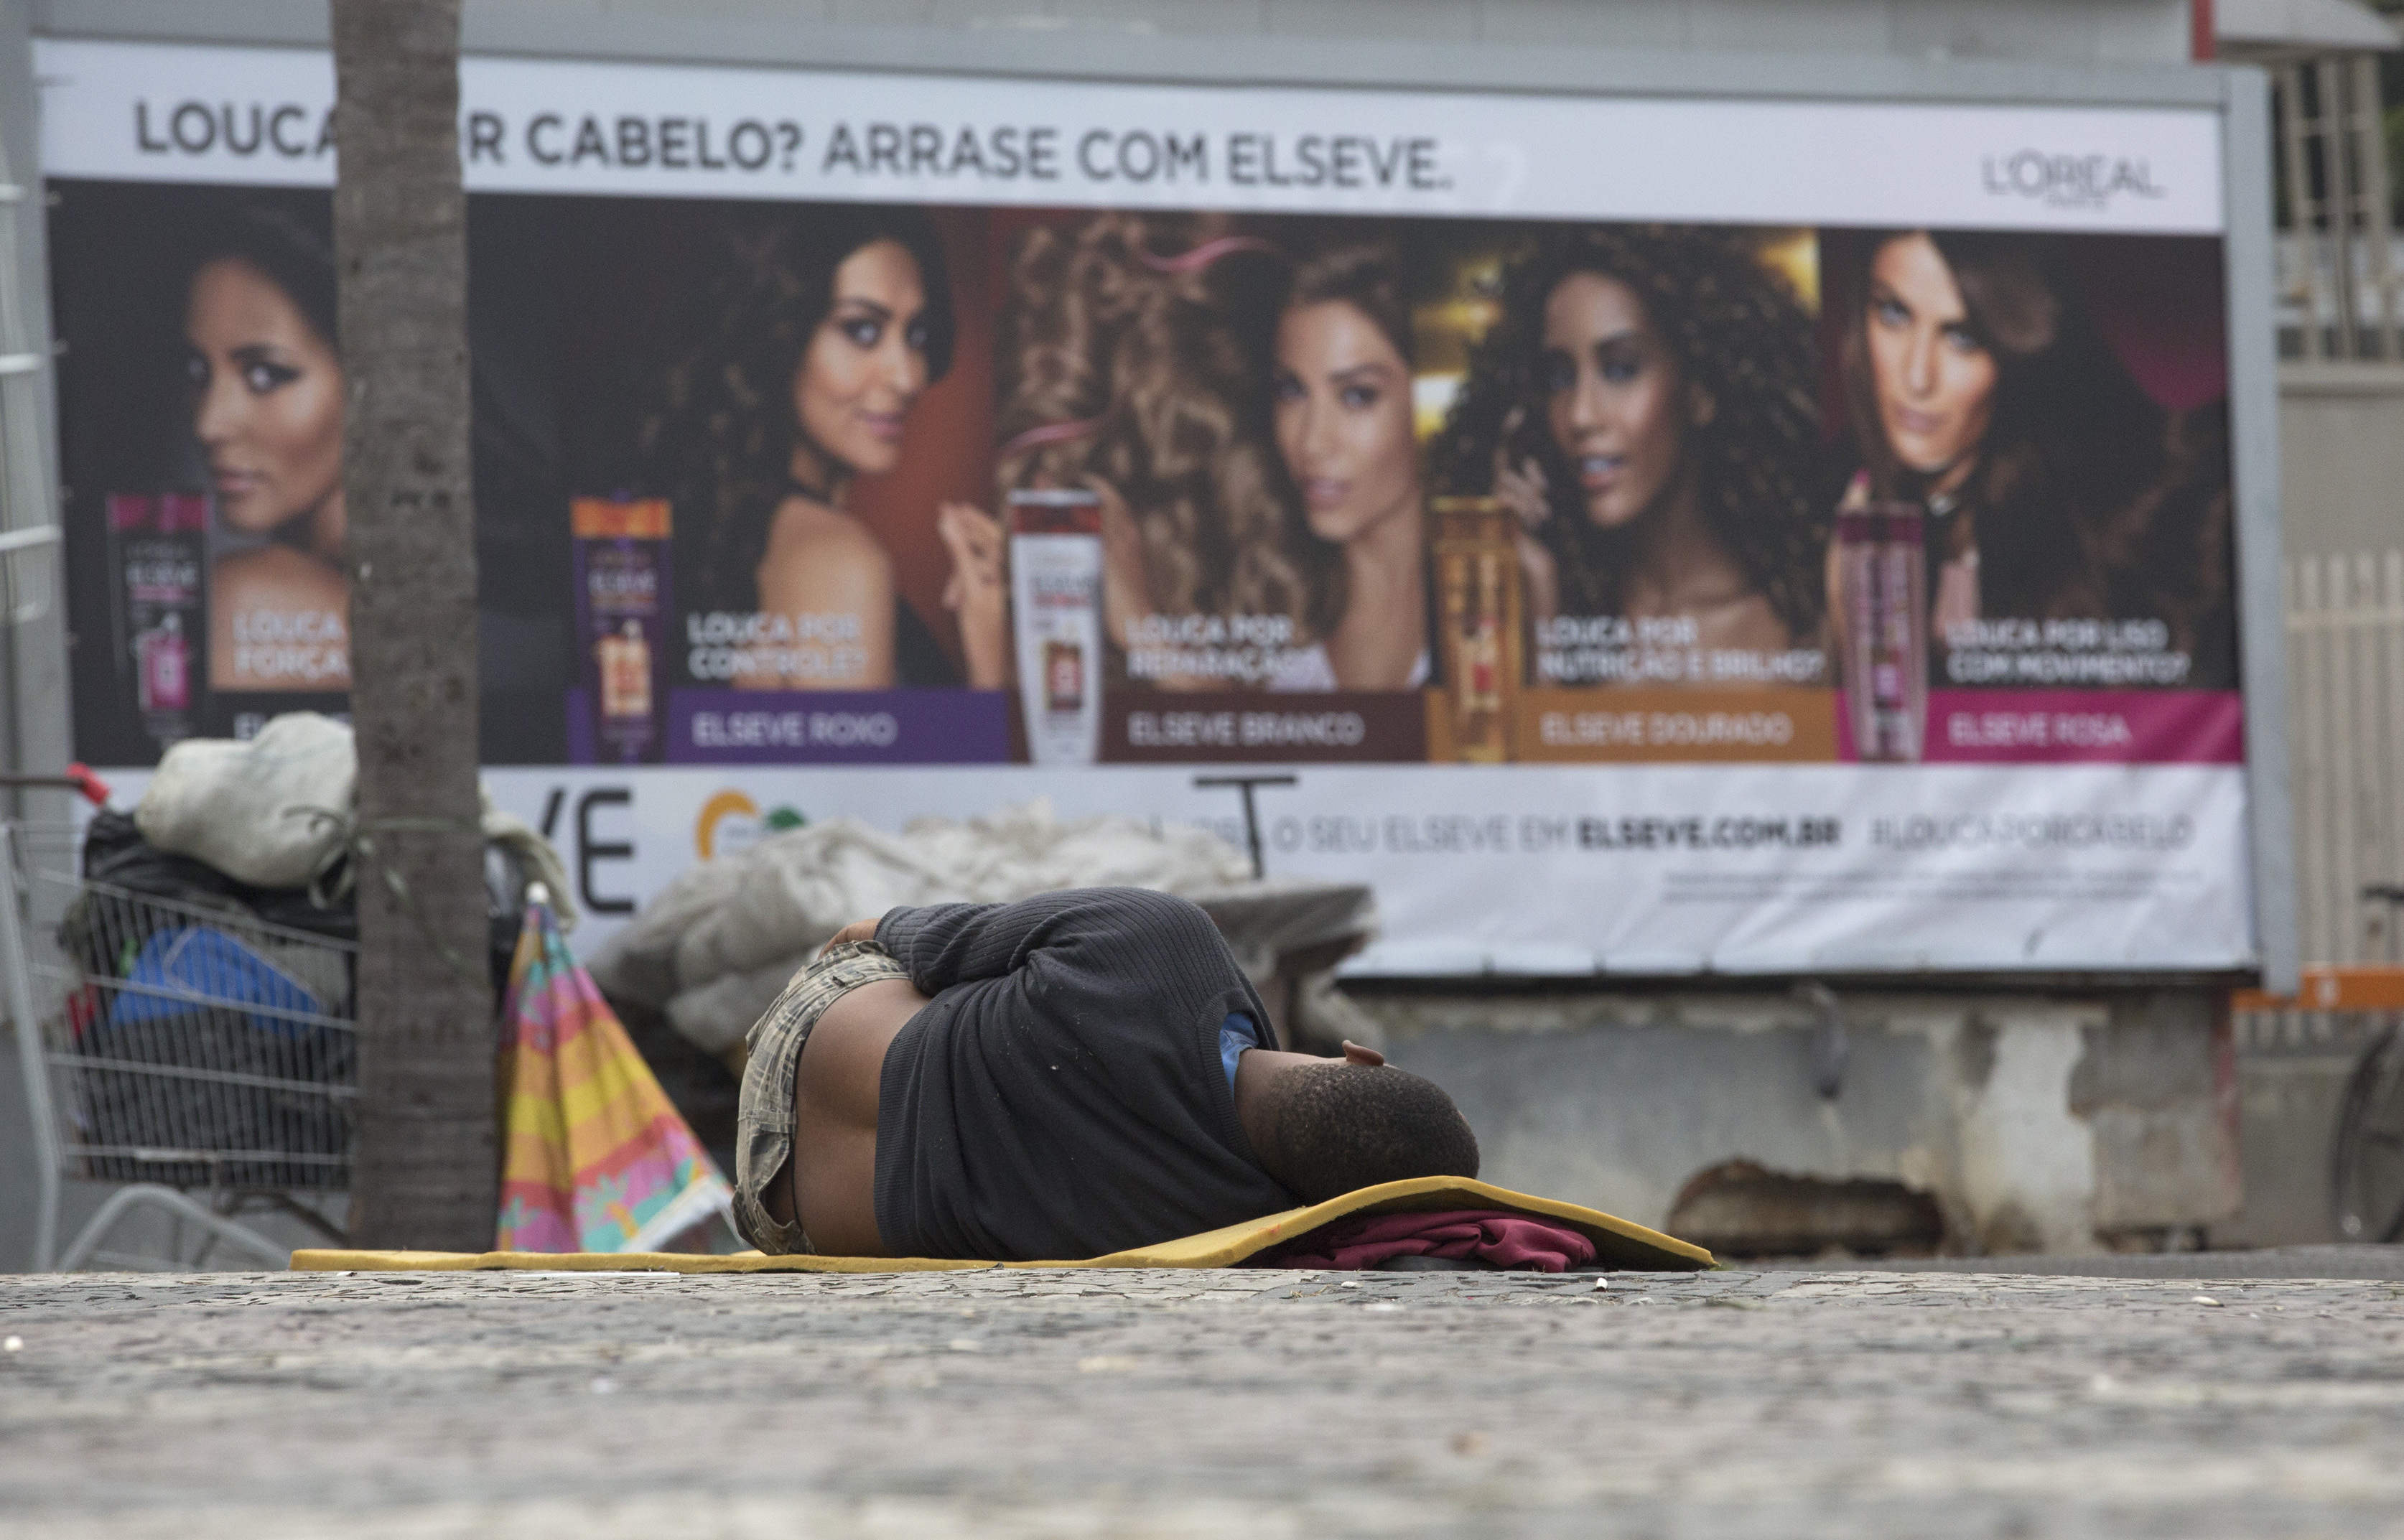 Hungry Rio de Janeiro residents suffer after soup kitchens shut down